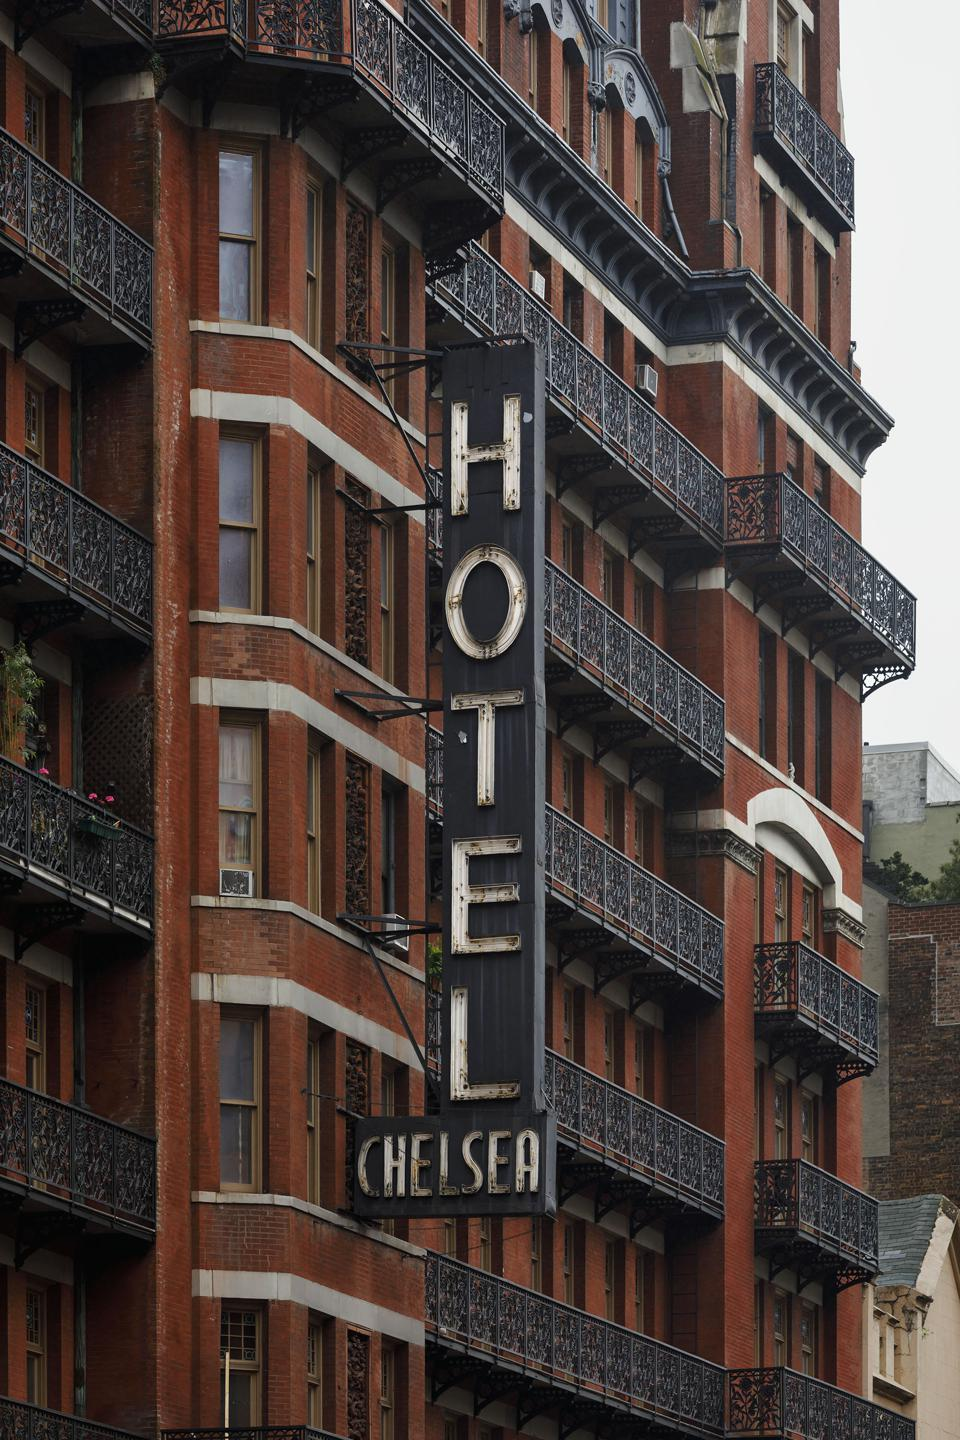 Exterior of the famous Hotel Chelsea in New York City.